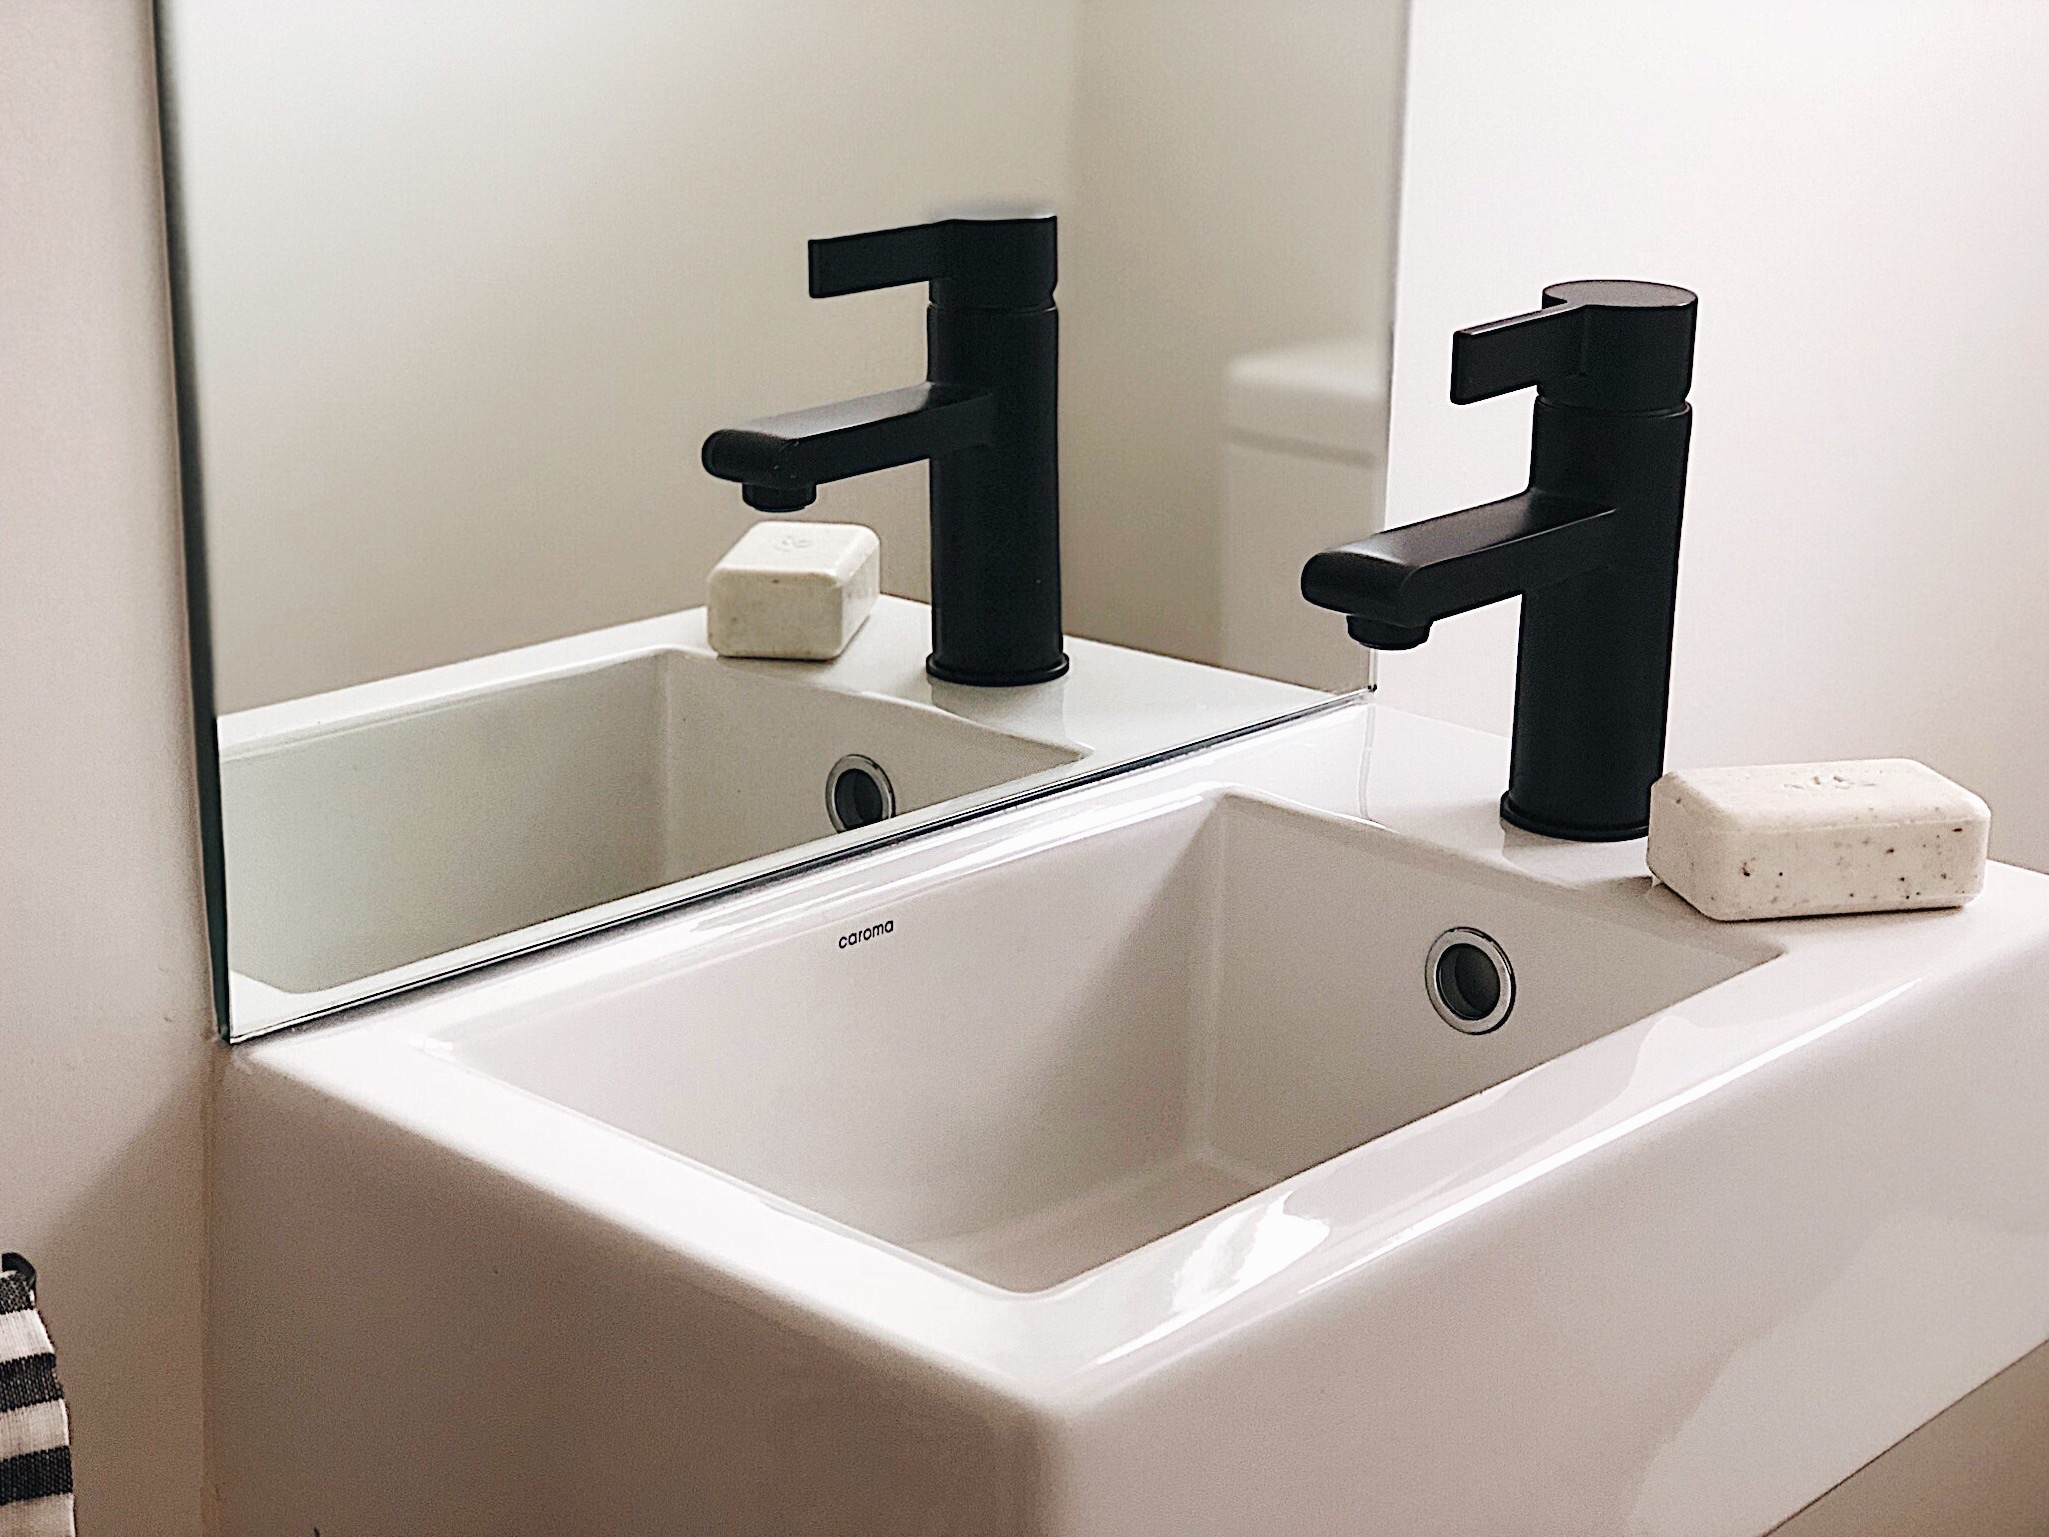 Pearson and Projects Relocatable Reno Bathroom Project Power Room Wall Basin  Black Accents.jpg